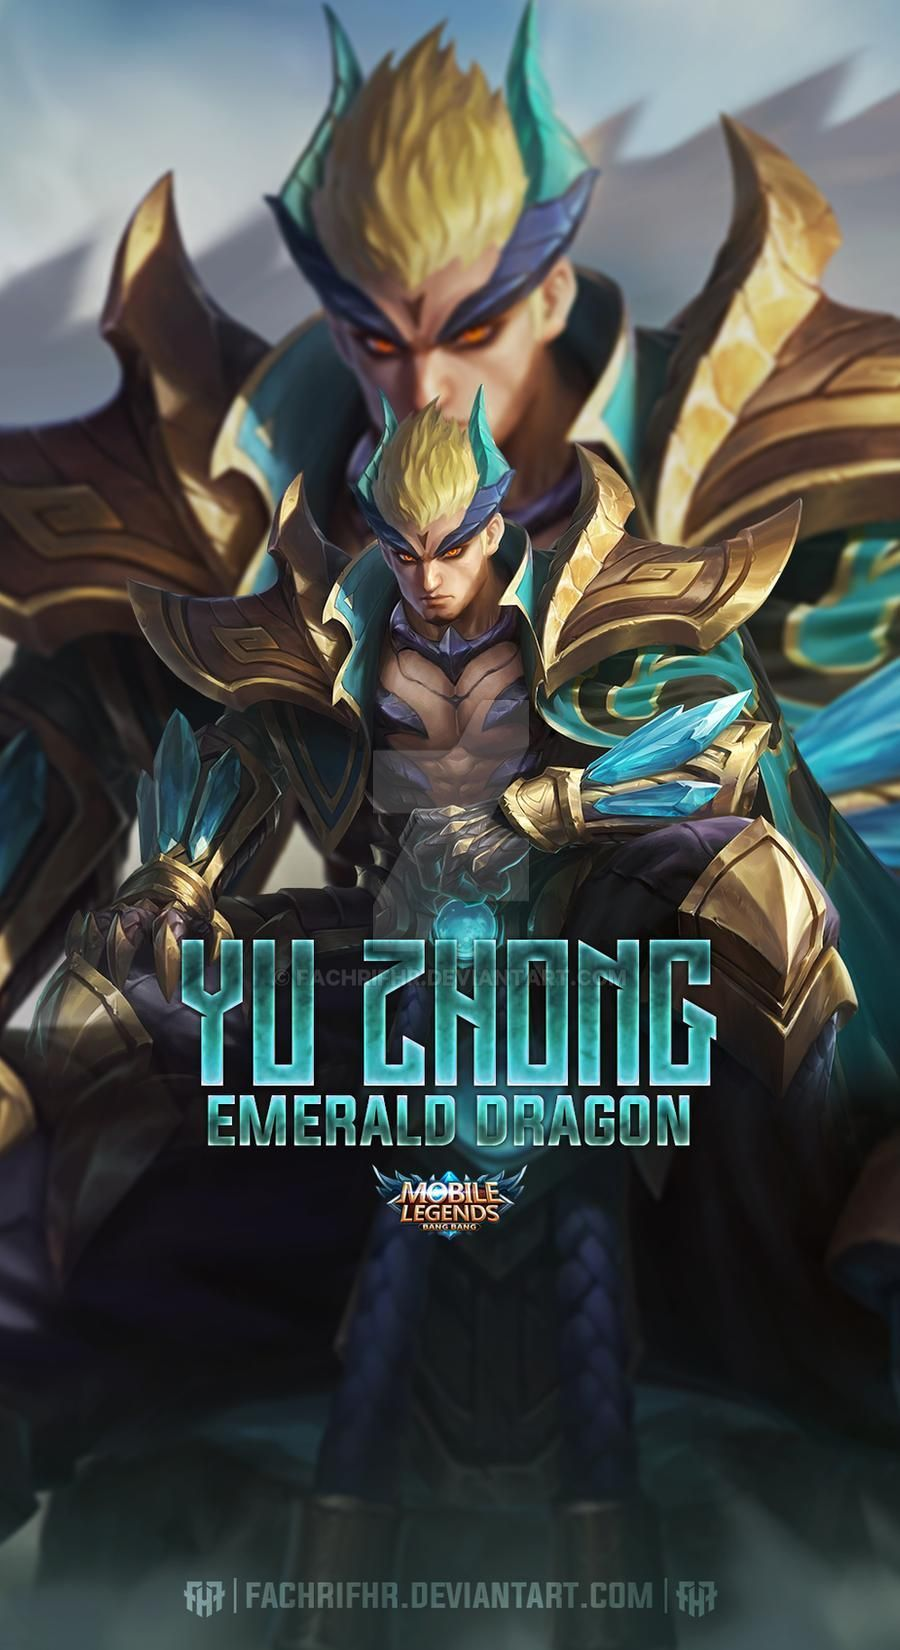 Yu Zhong Emerald Dragon By Fachrifhr On Deviantart Mobile Legend Wallpaper Mobile Legends Emerald Dragon